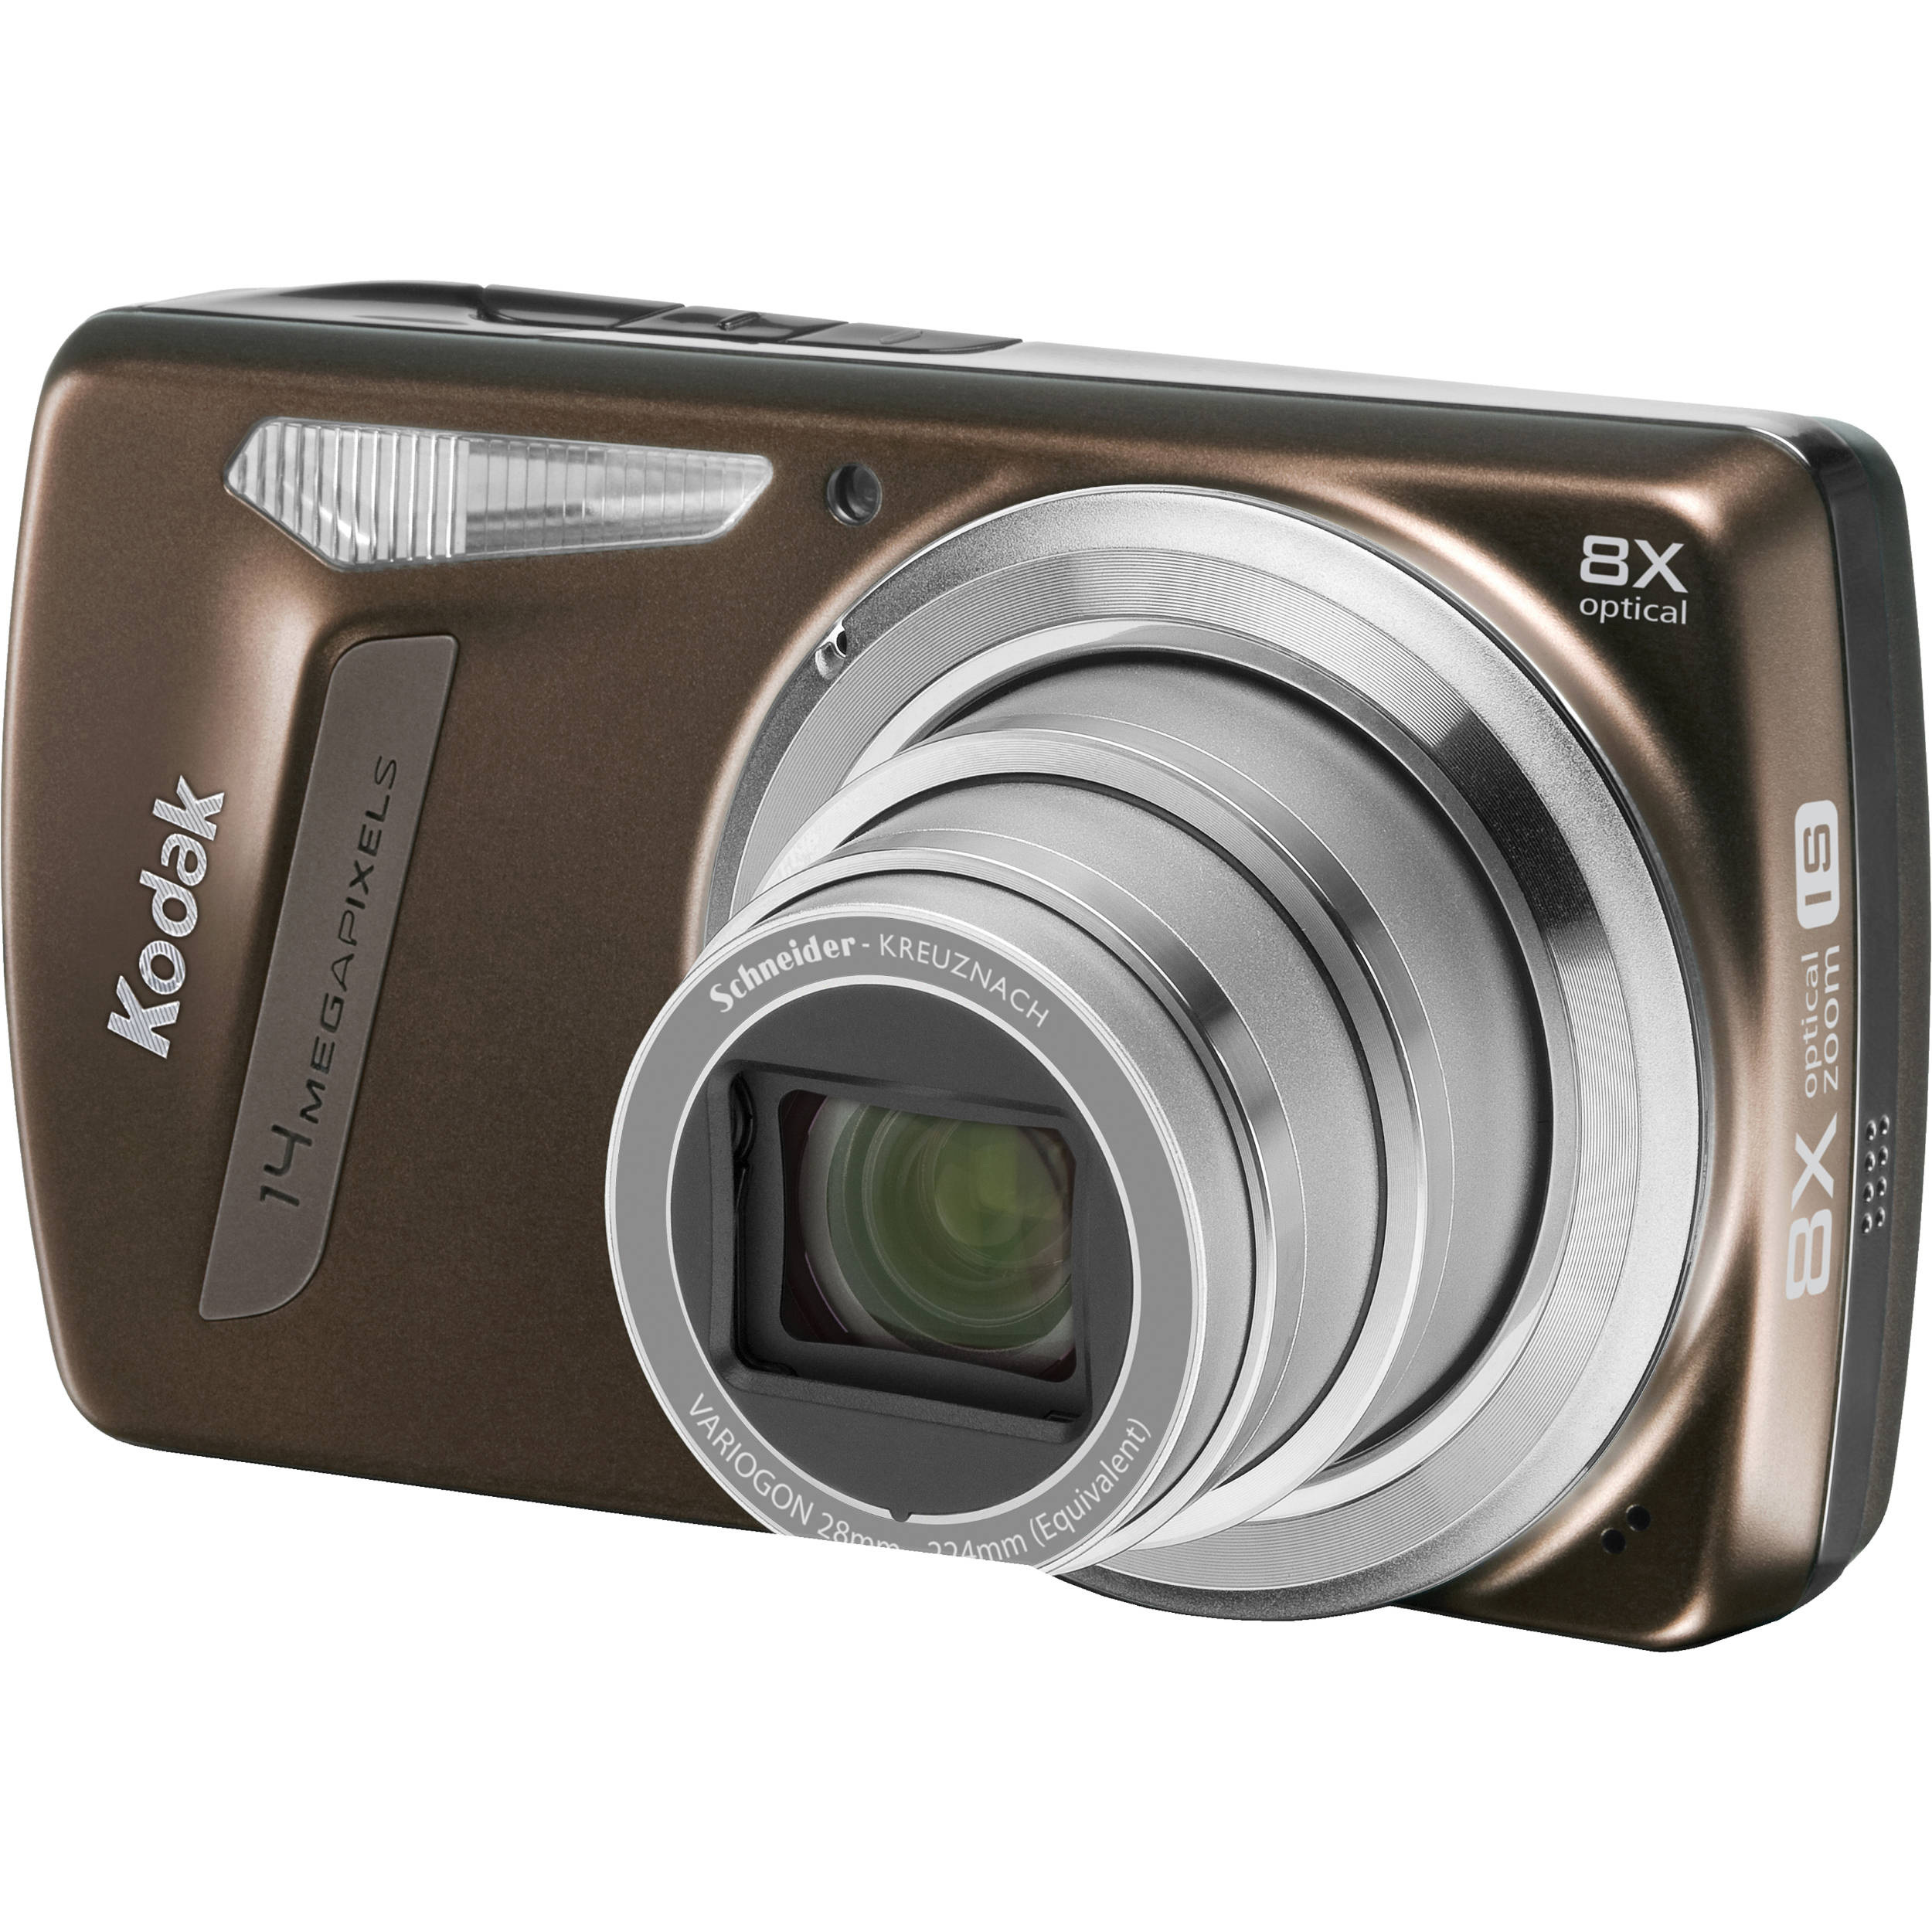 Kodak EasyShare M580 Digital Camera (Brown)